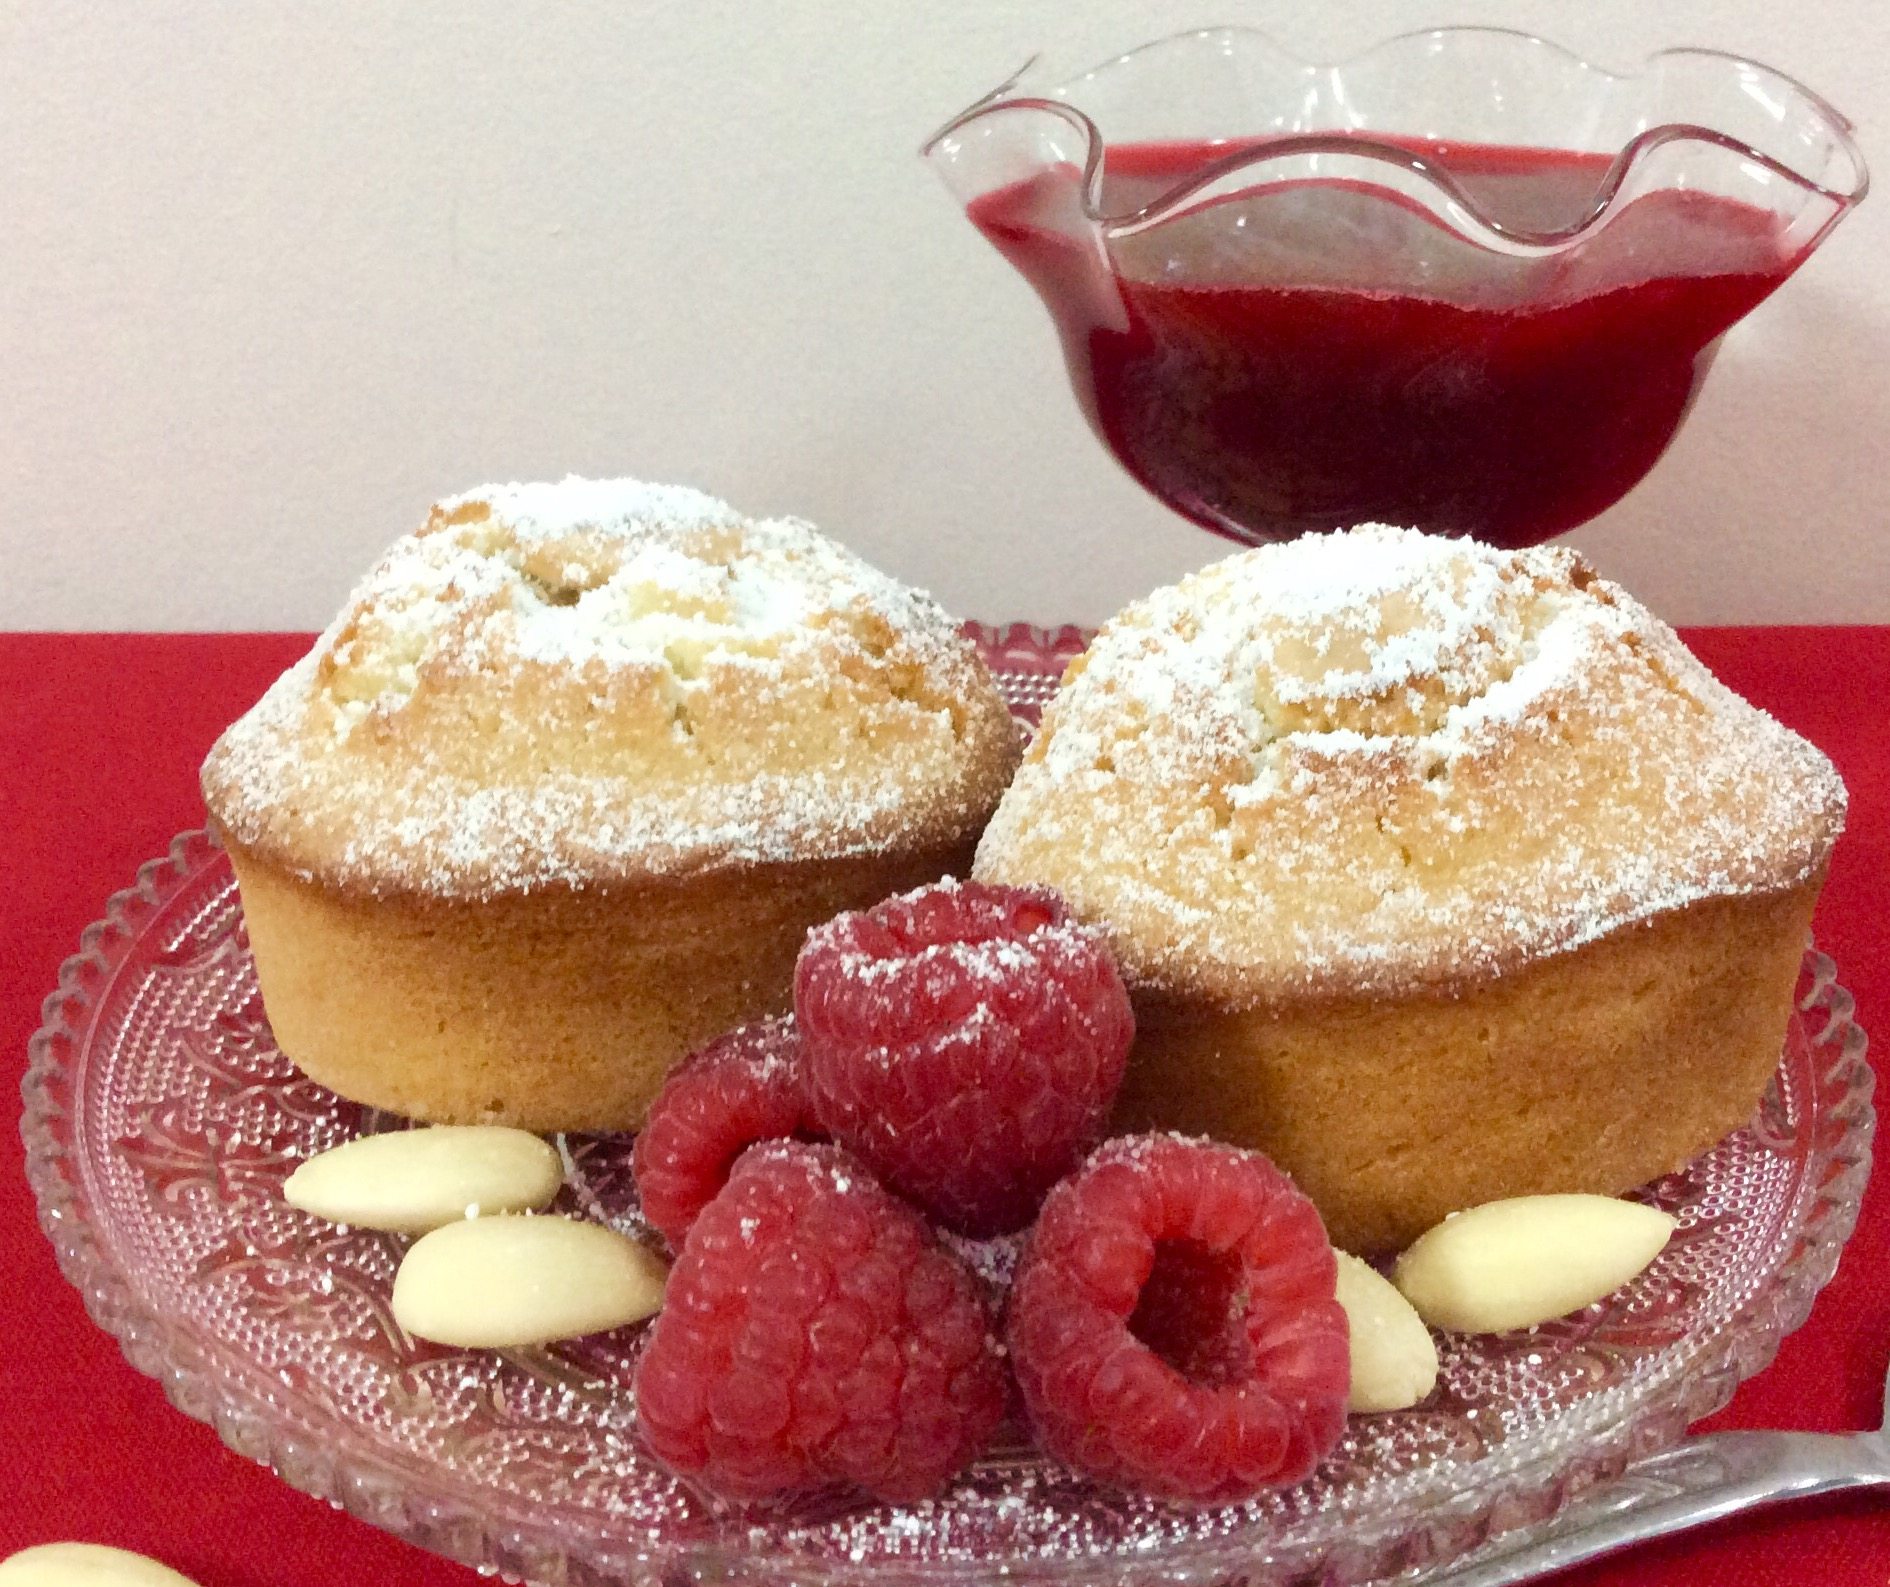 Almond Friands and Raspberry Coulis